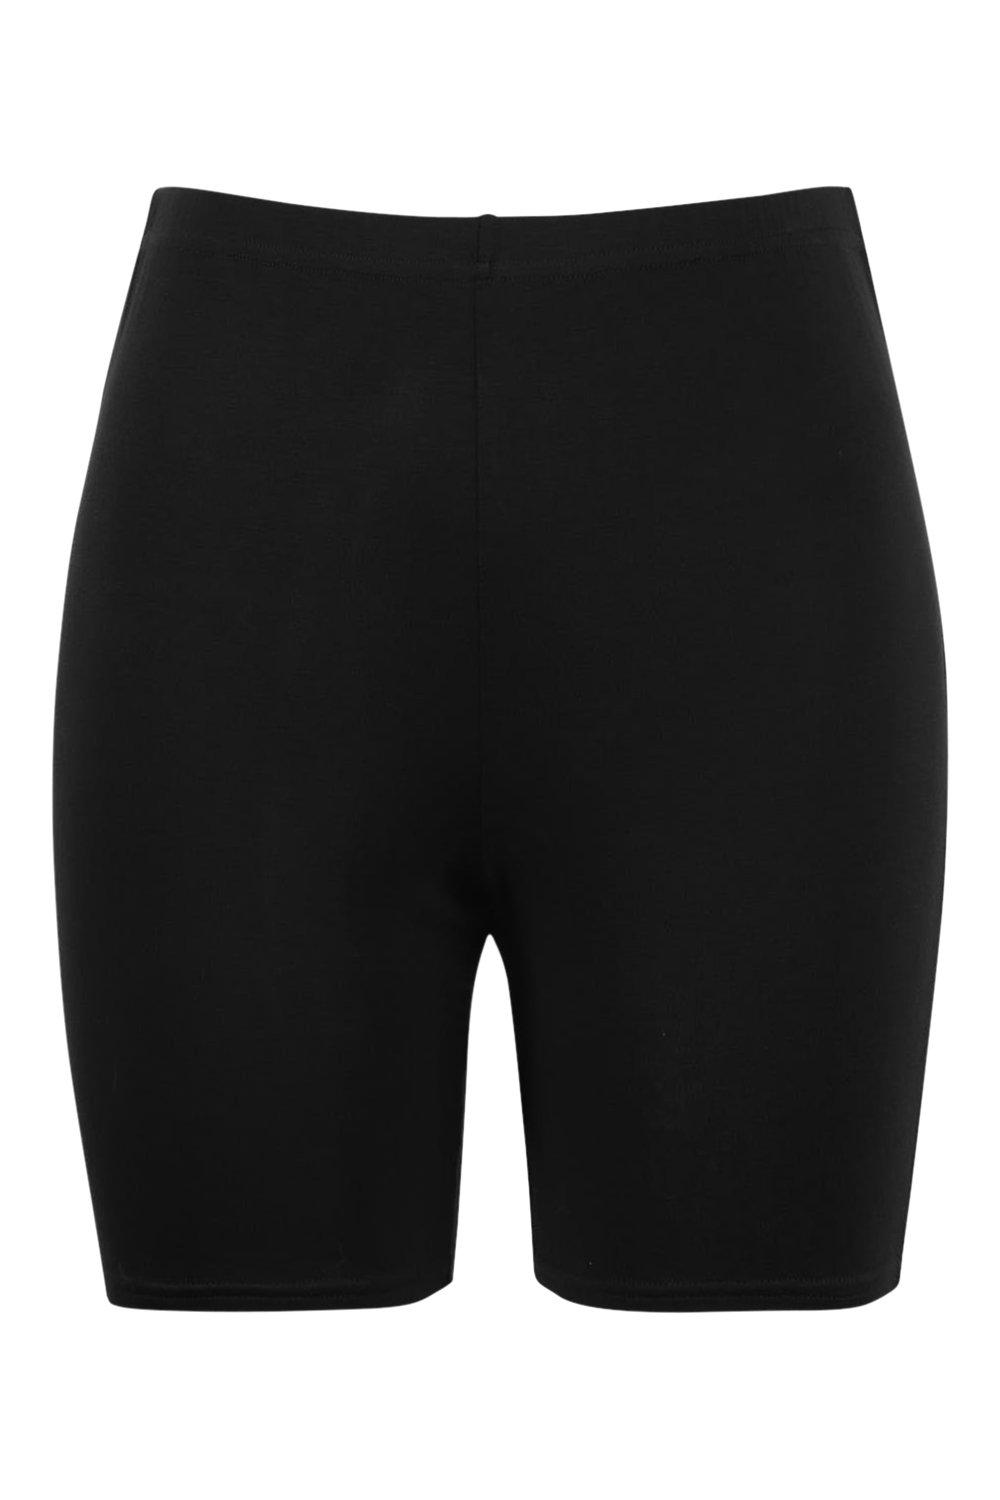 Jersey Cycle Short black Plus Jersey Cycle Plus Short 8waIBHxq